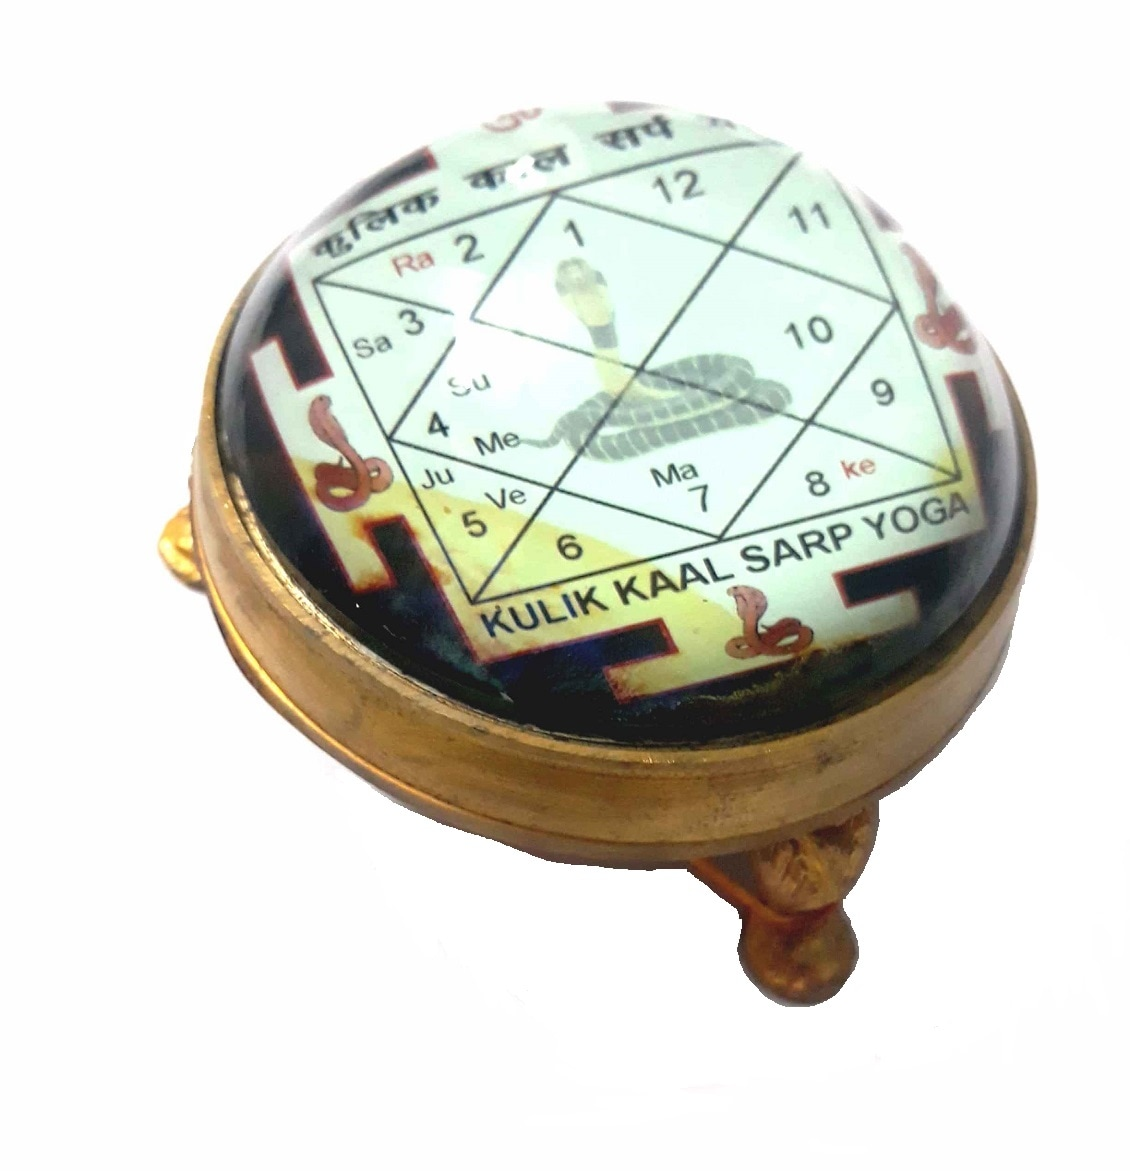 Numeroastro Kaal Sarp Yantra In Brass Table Top Yantra (8 Cms) (1 Pc)